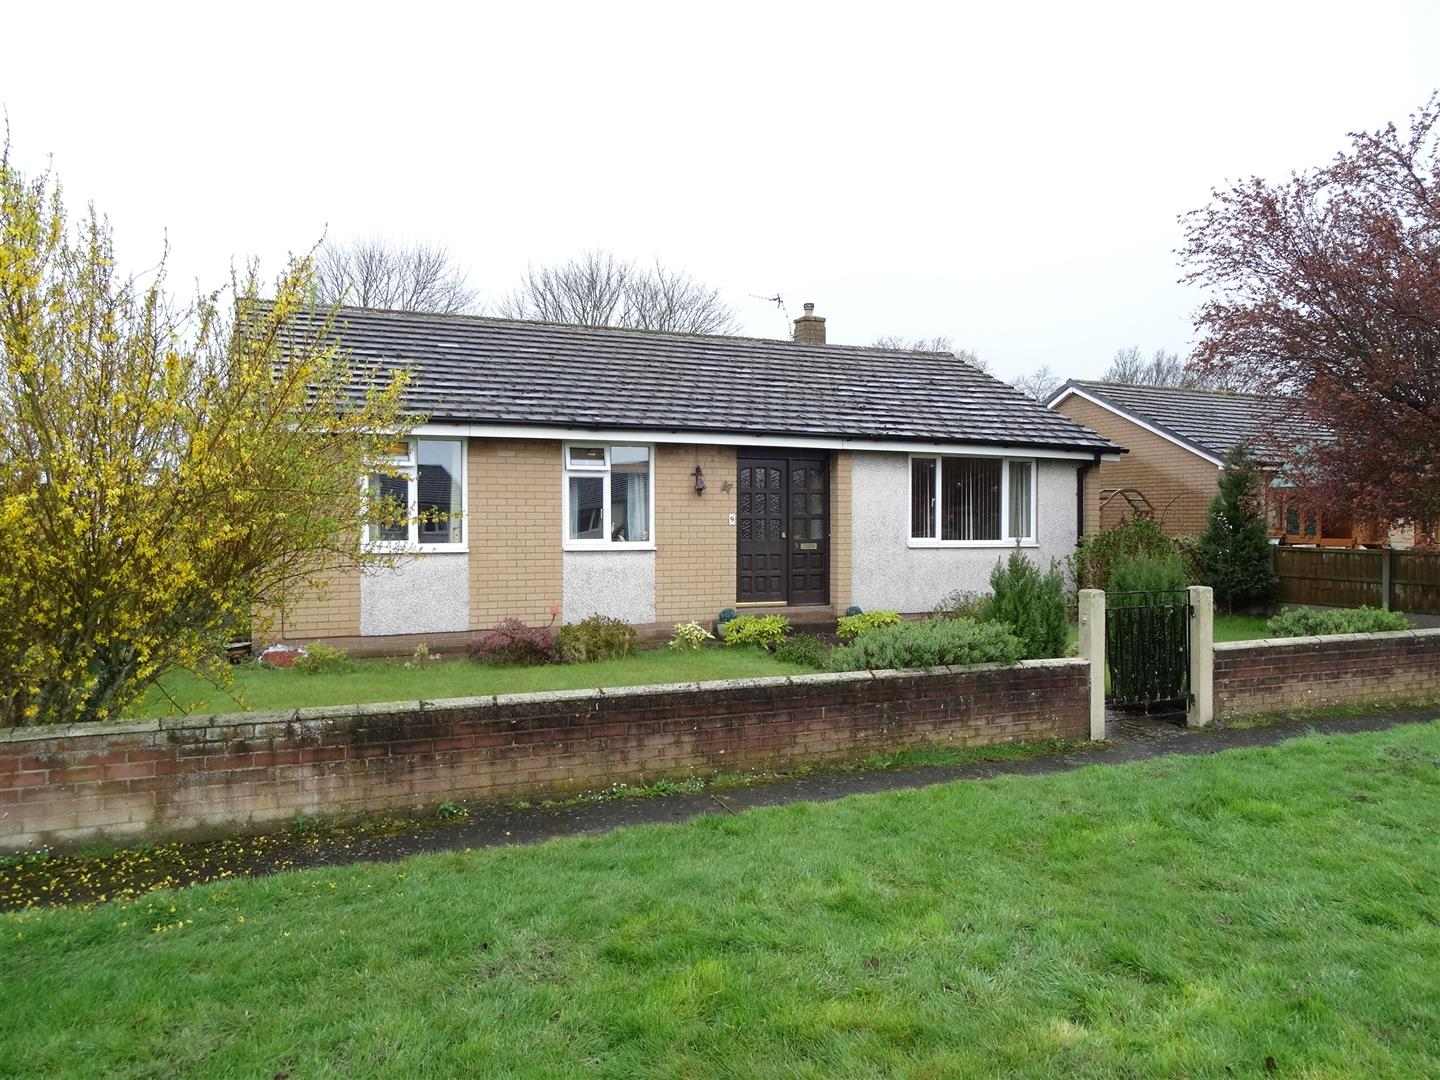 9 Grahams Croft Carlisle 3 Bedrooms Bungalow - Detached For Sale